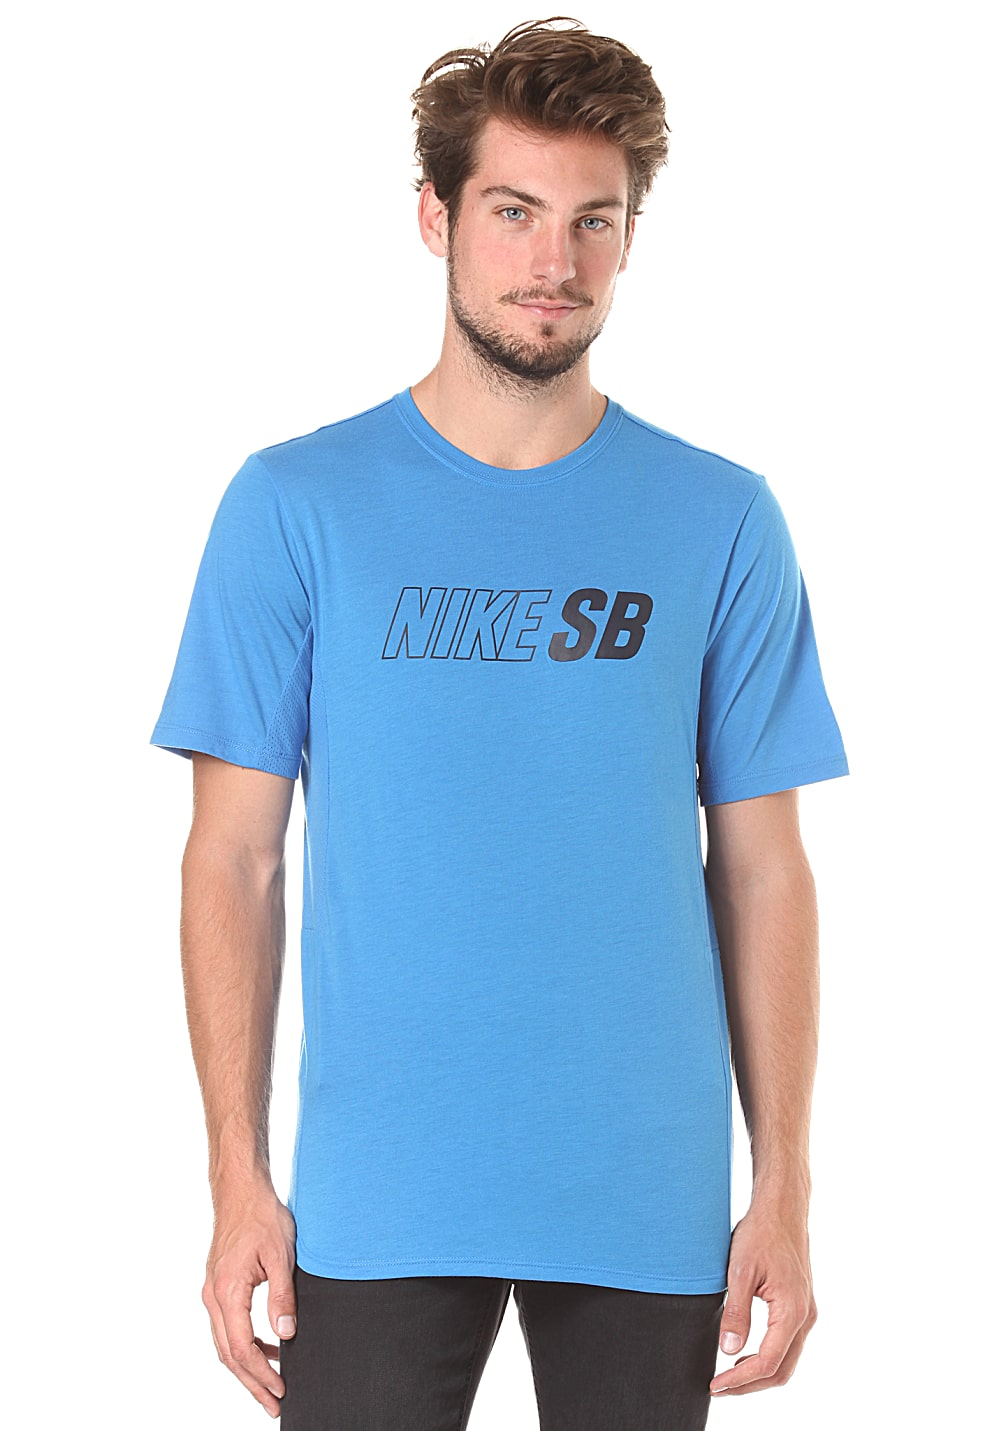 Nike SB Skyline Dri-Fit Cool GFX - T-Shirt für ...